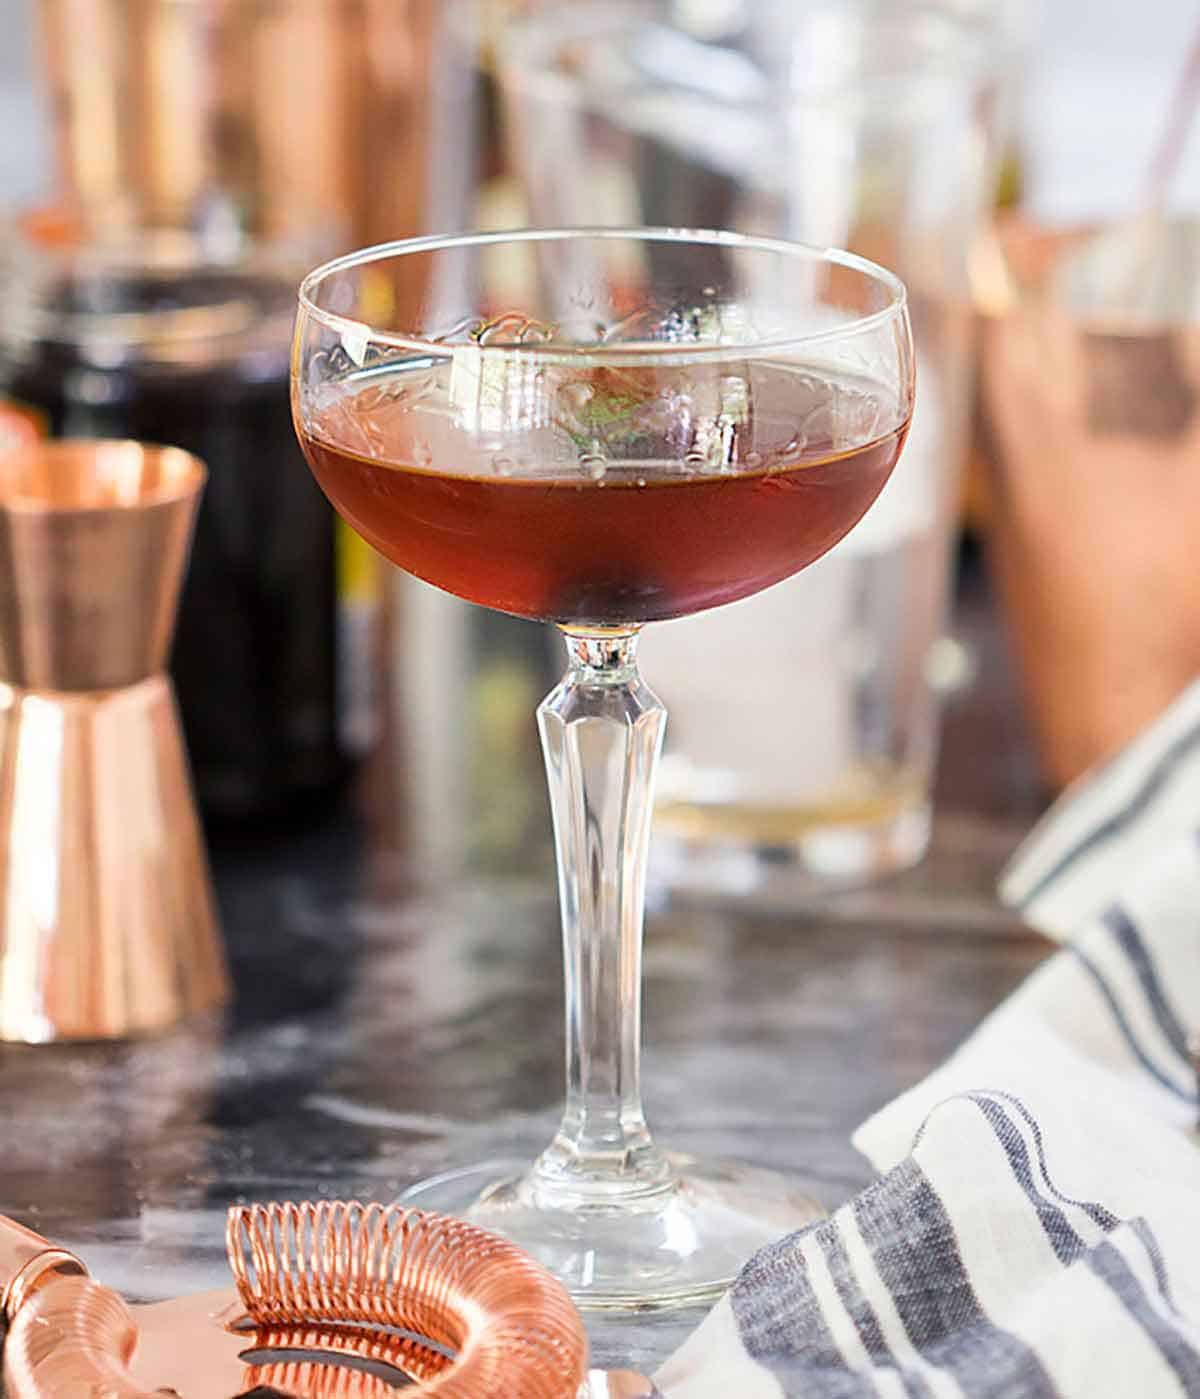 A Manhattan in a cocktail glass behind a linen napkin and strainer.